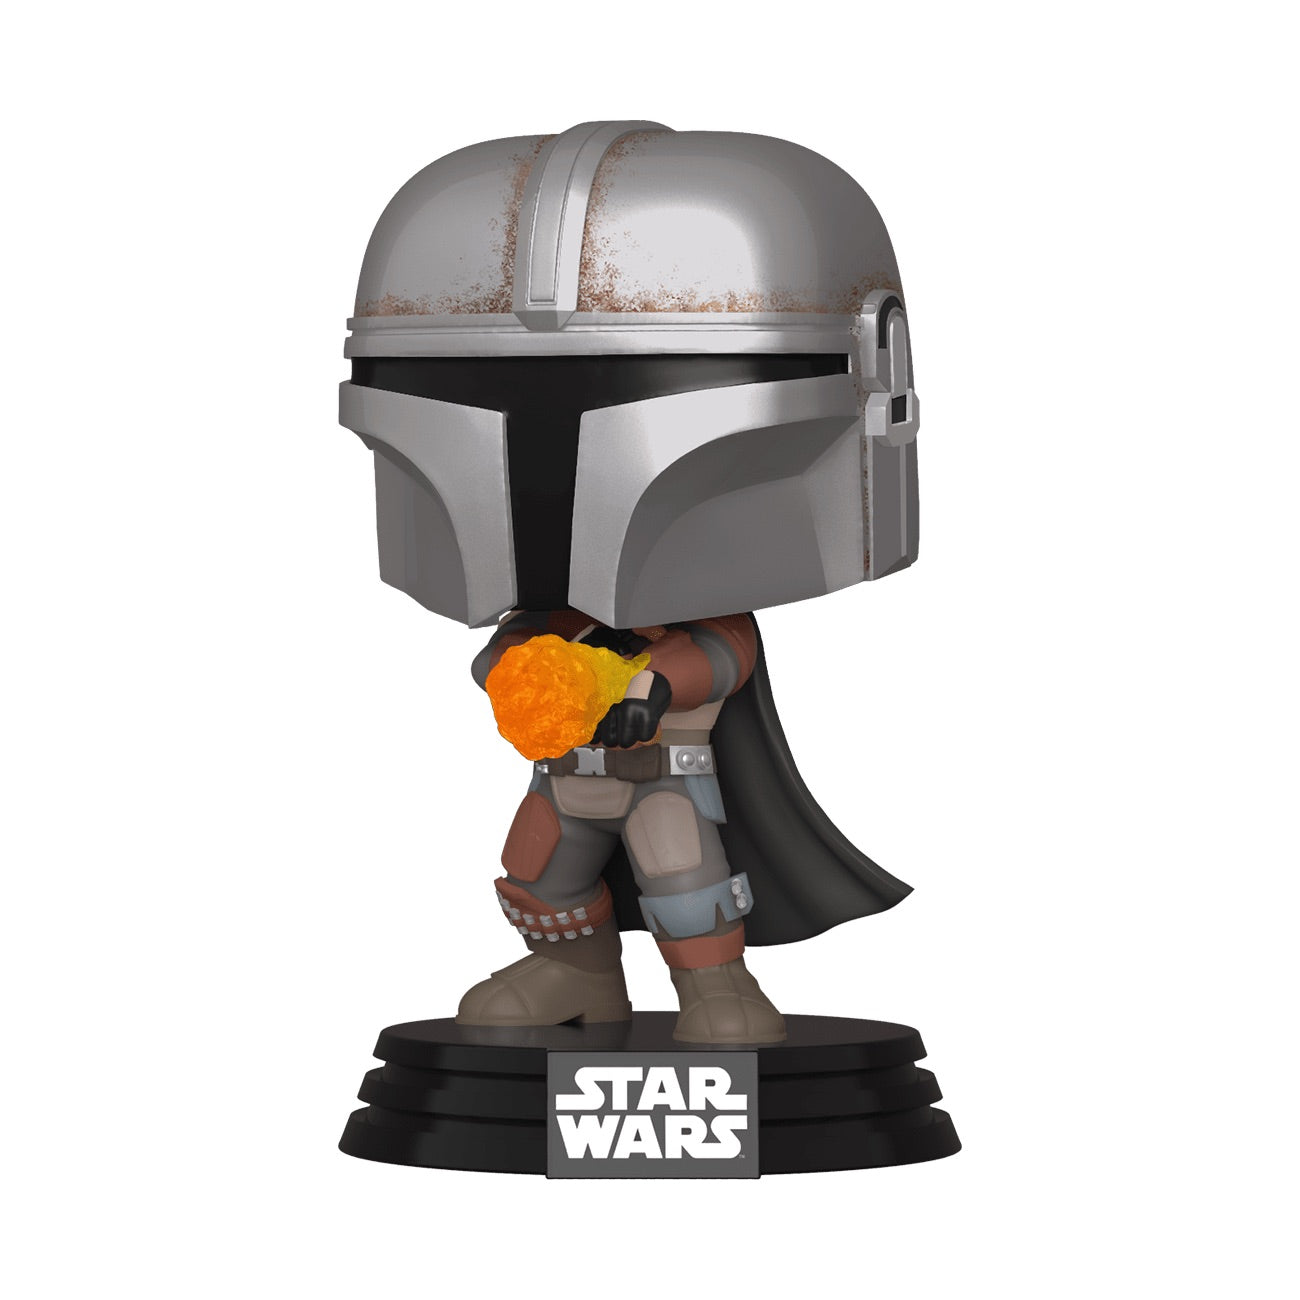 Star Wars The Mandalorian Flame Throwing Exclusive